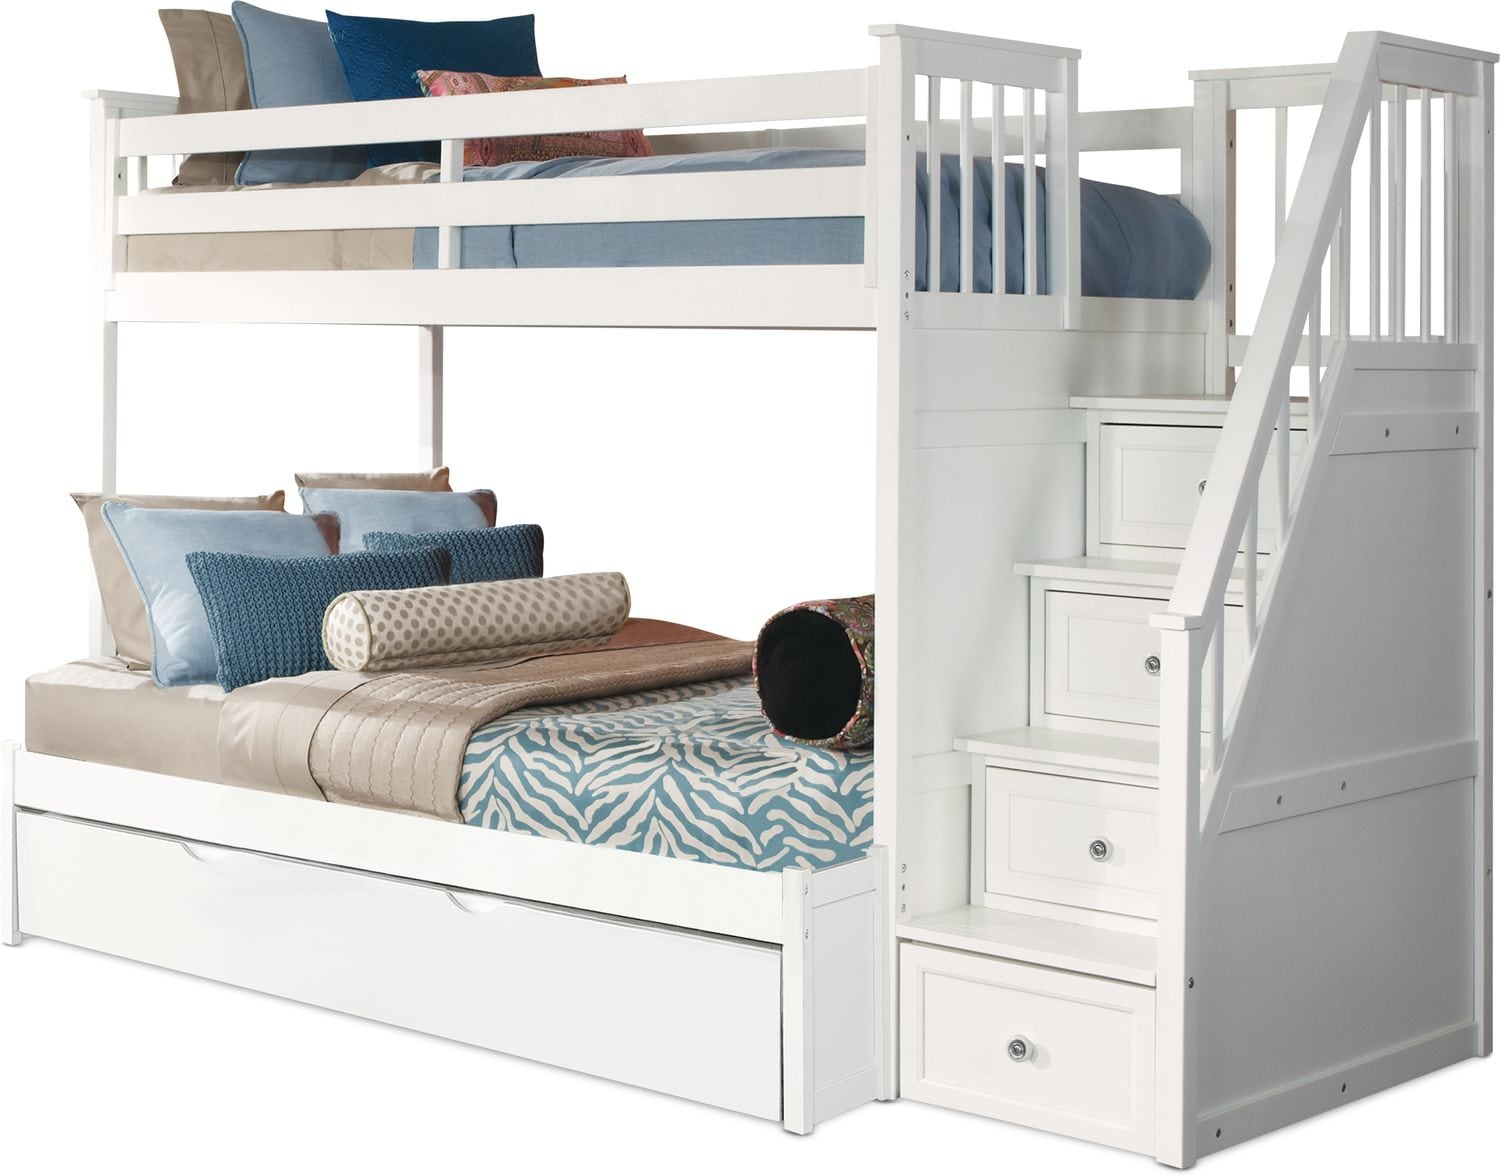 Kids Furniture - Flynn Trundle Bunk Bed with Storage Stairs